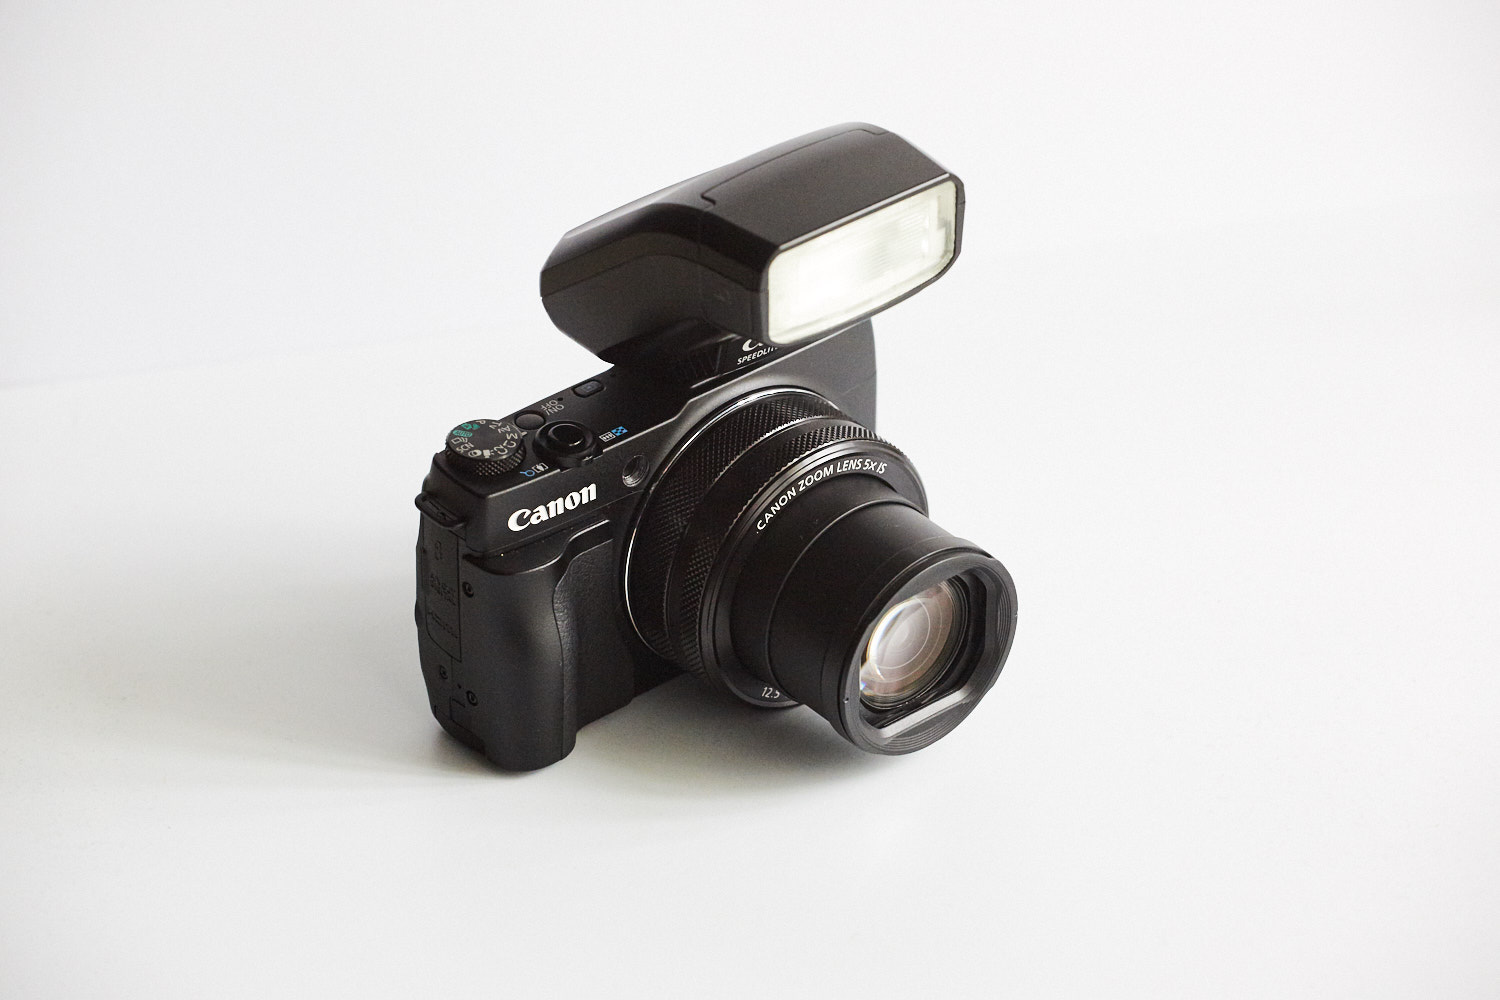 Canon Speedlite 270 EX facing forward. I only do this when I need more power for say bigger groups.